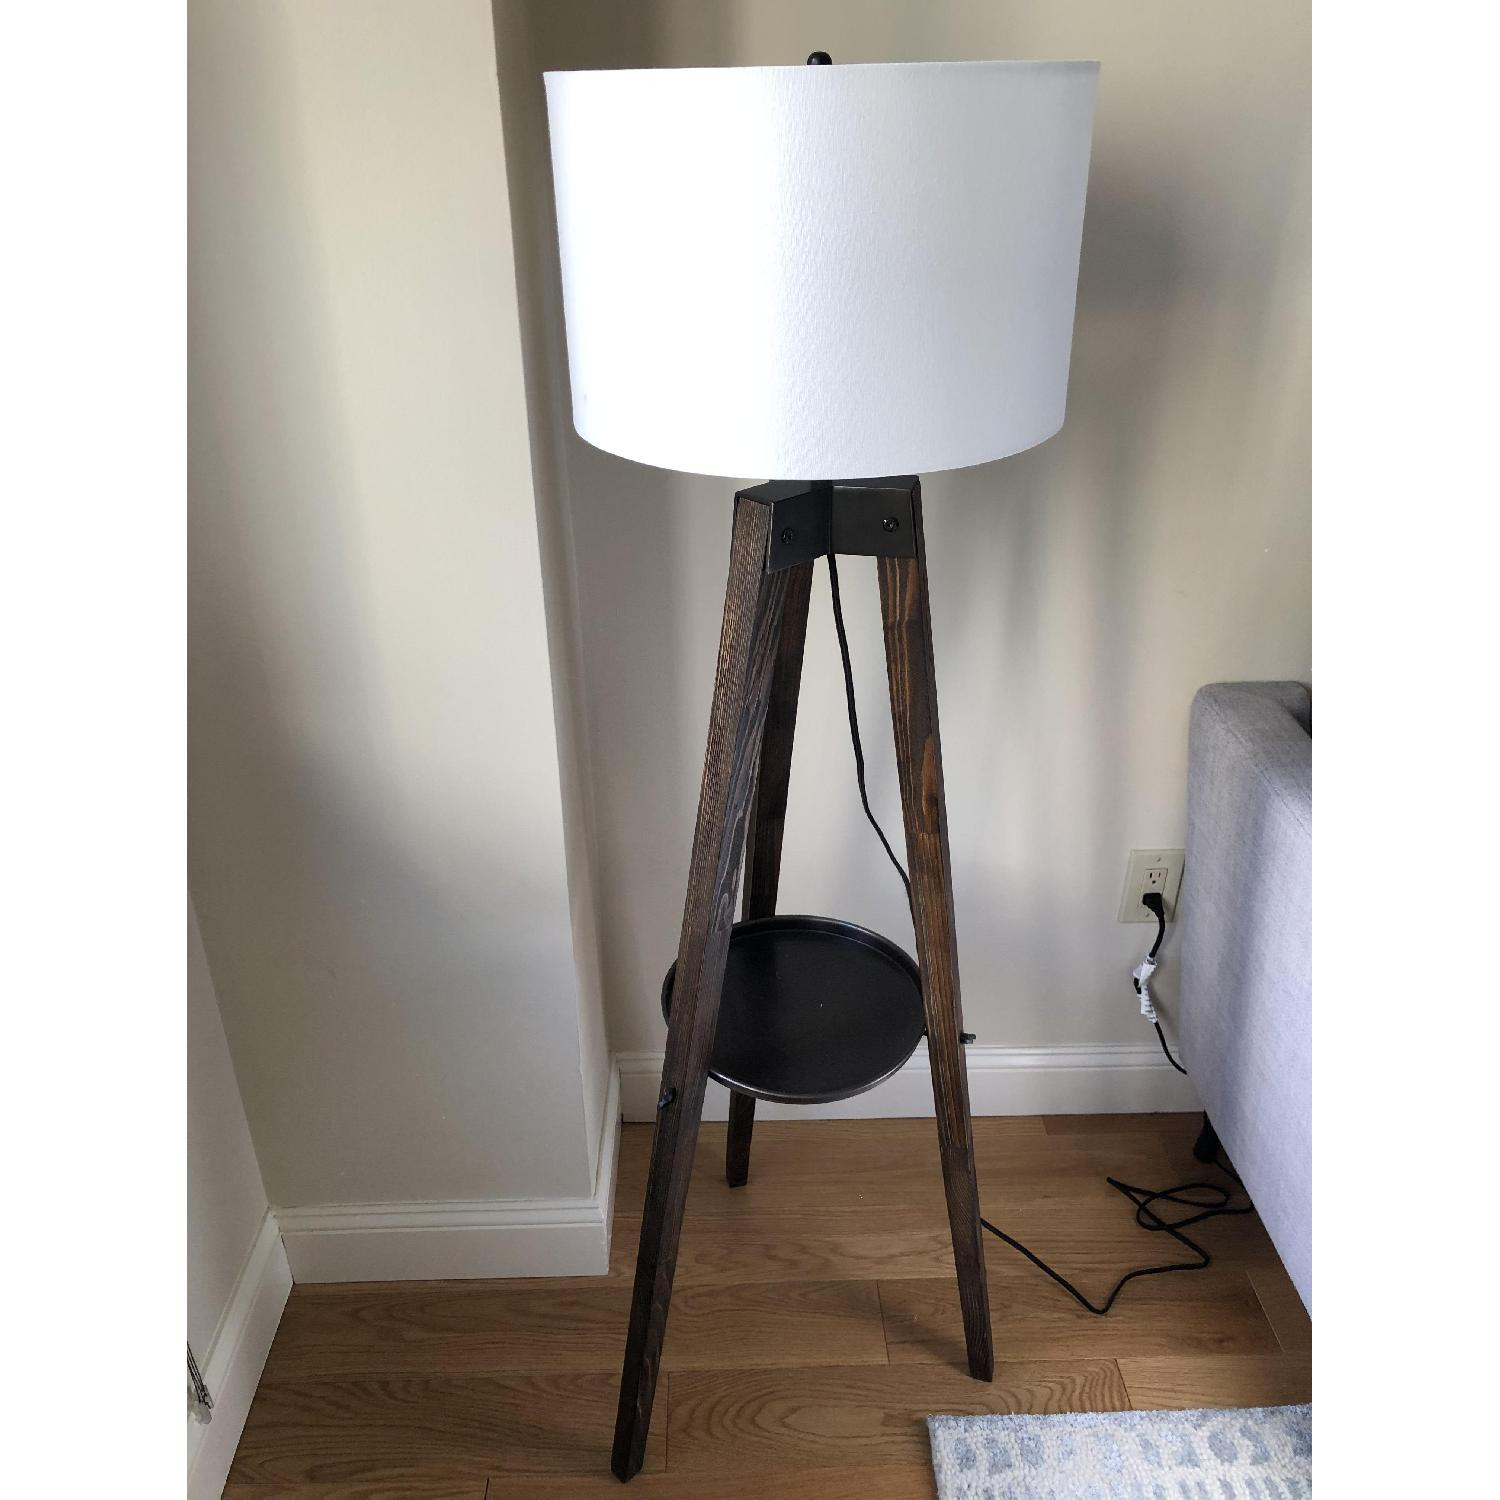 Pottery Barn Miles Tripod Floor Lamp-1